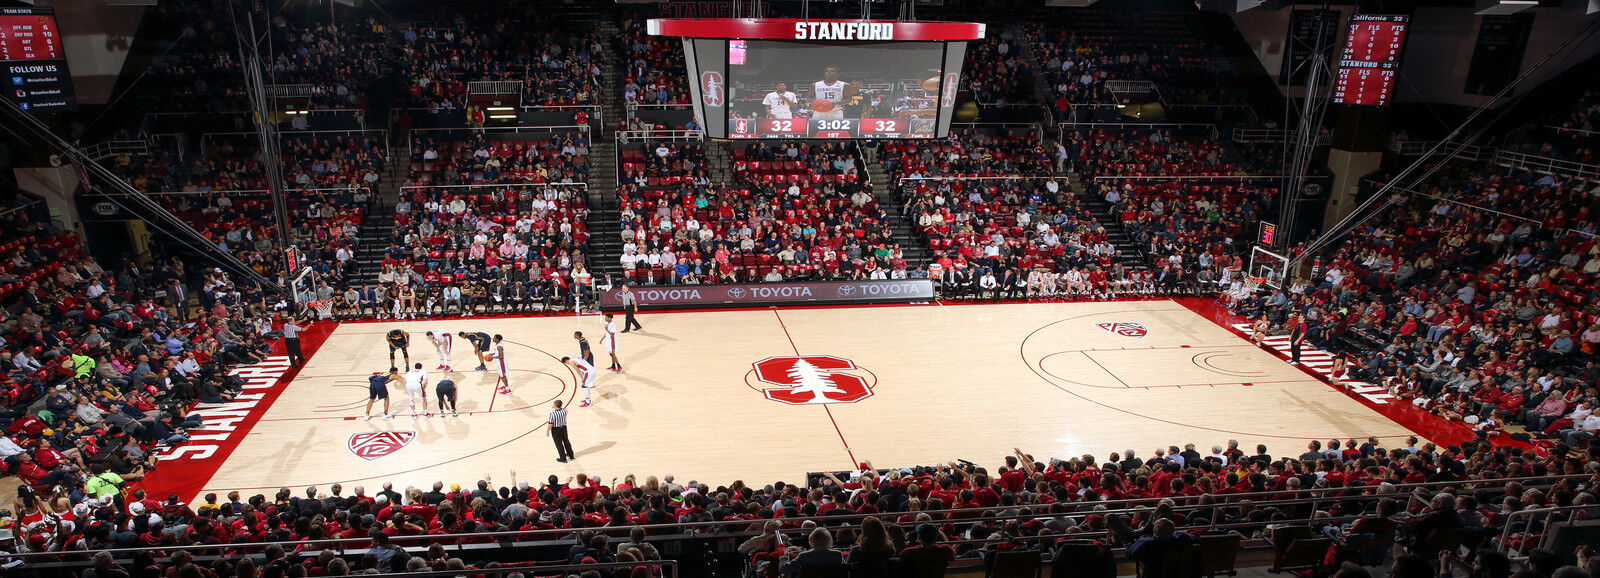 North Carolina Tar Heels at Stanford Cardinal Basketball